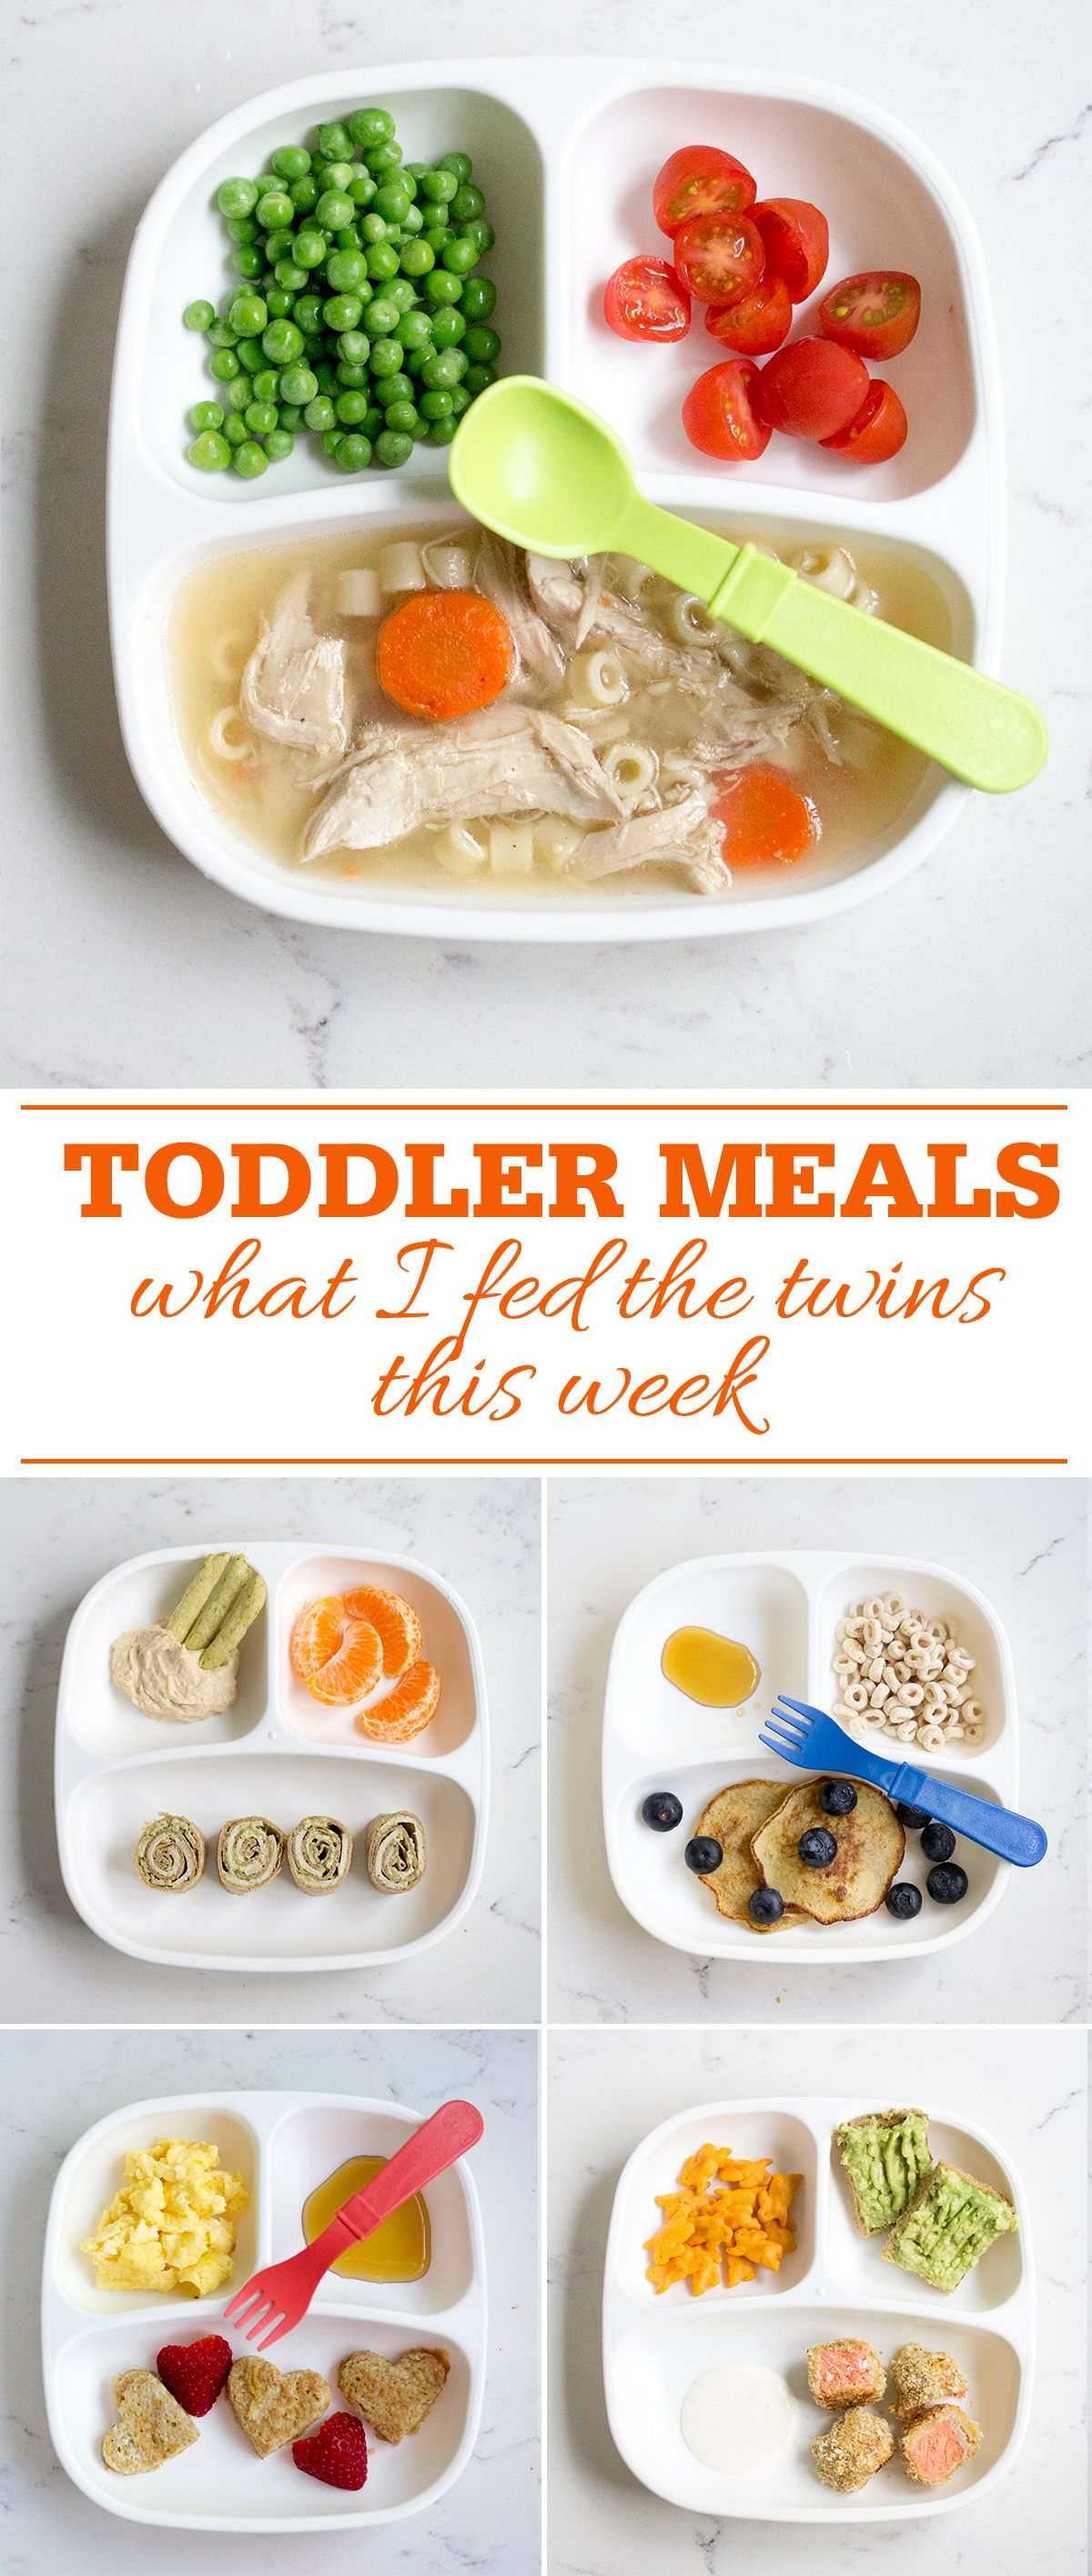 toddler meals: what i fed my twins this week. healthy breakfast